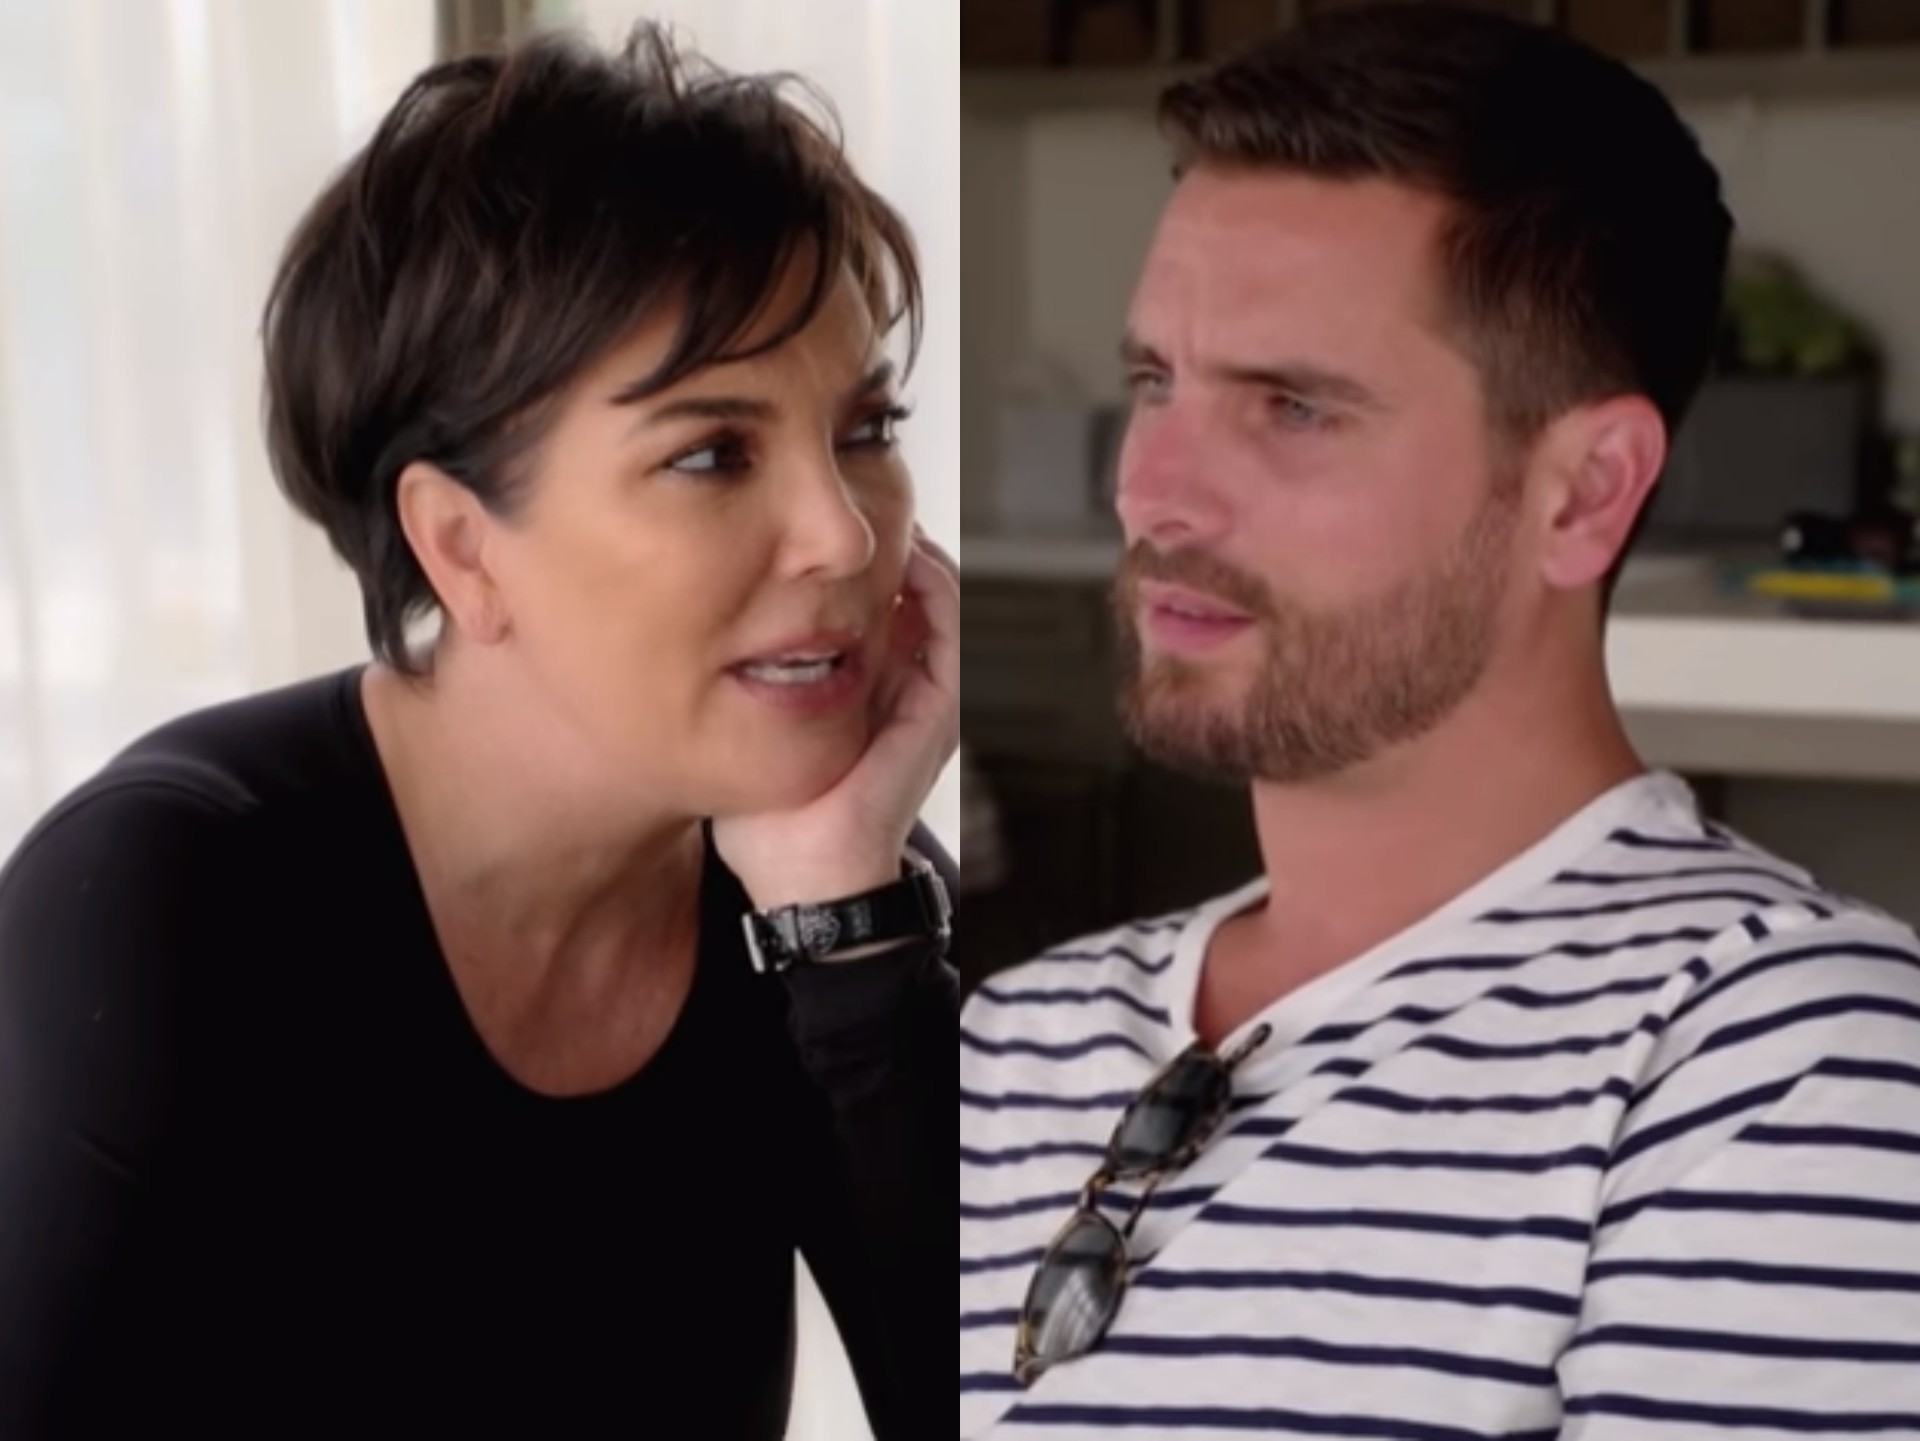 Kris Jenner Grills Scott Disick on Sofia Richie's Age and Relationship Status